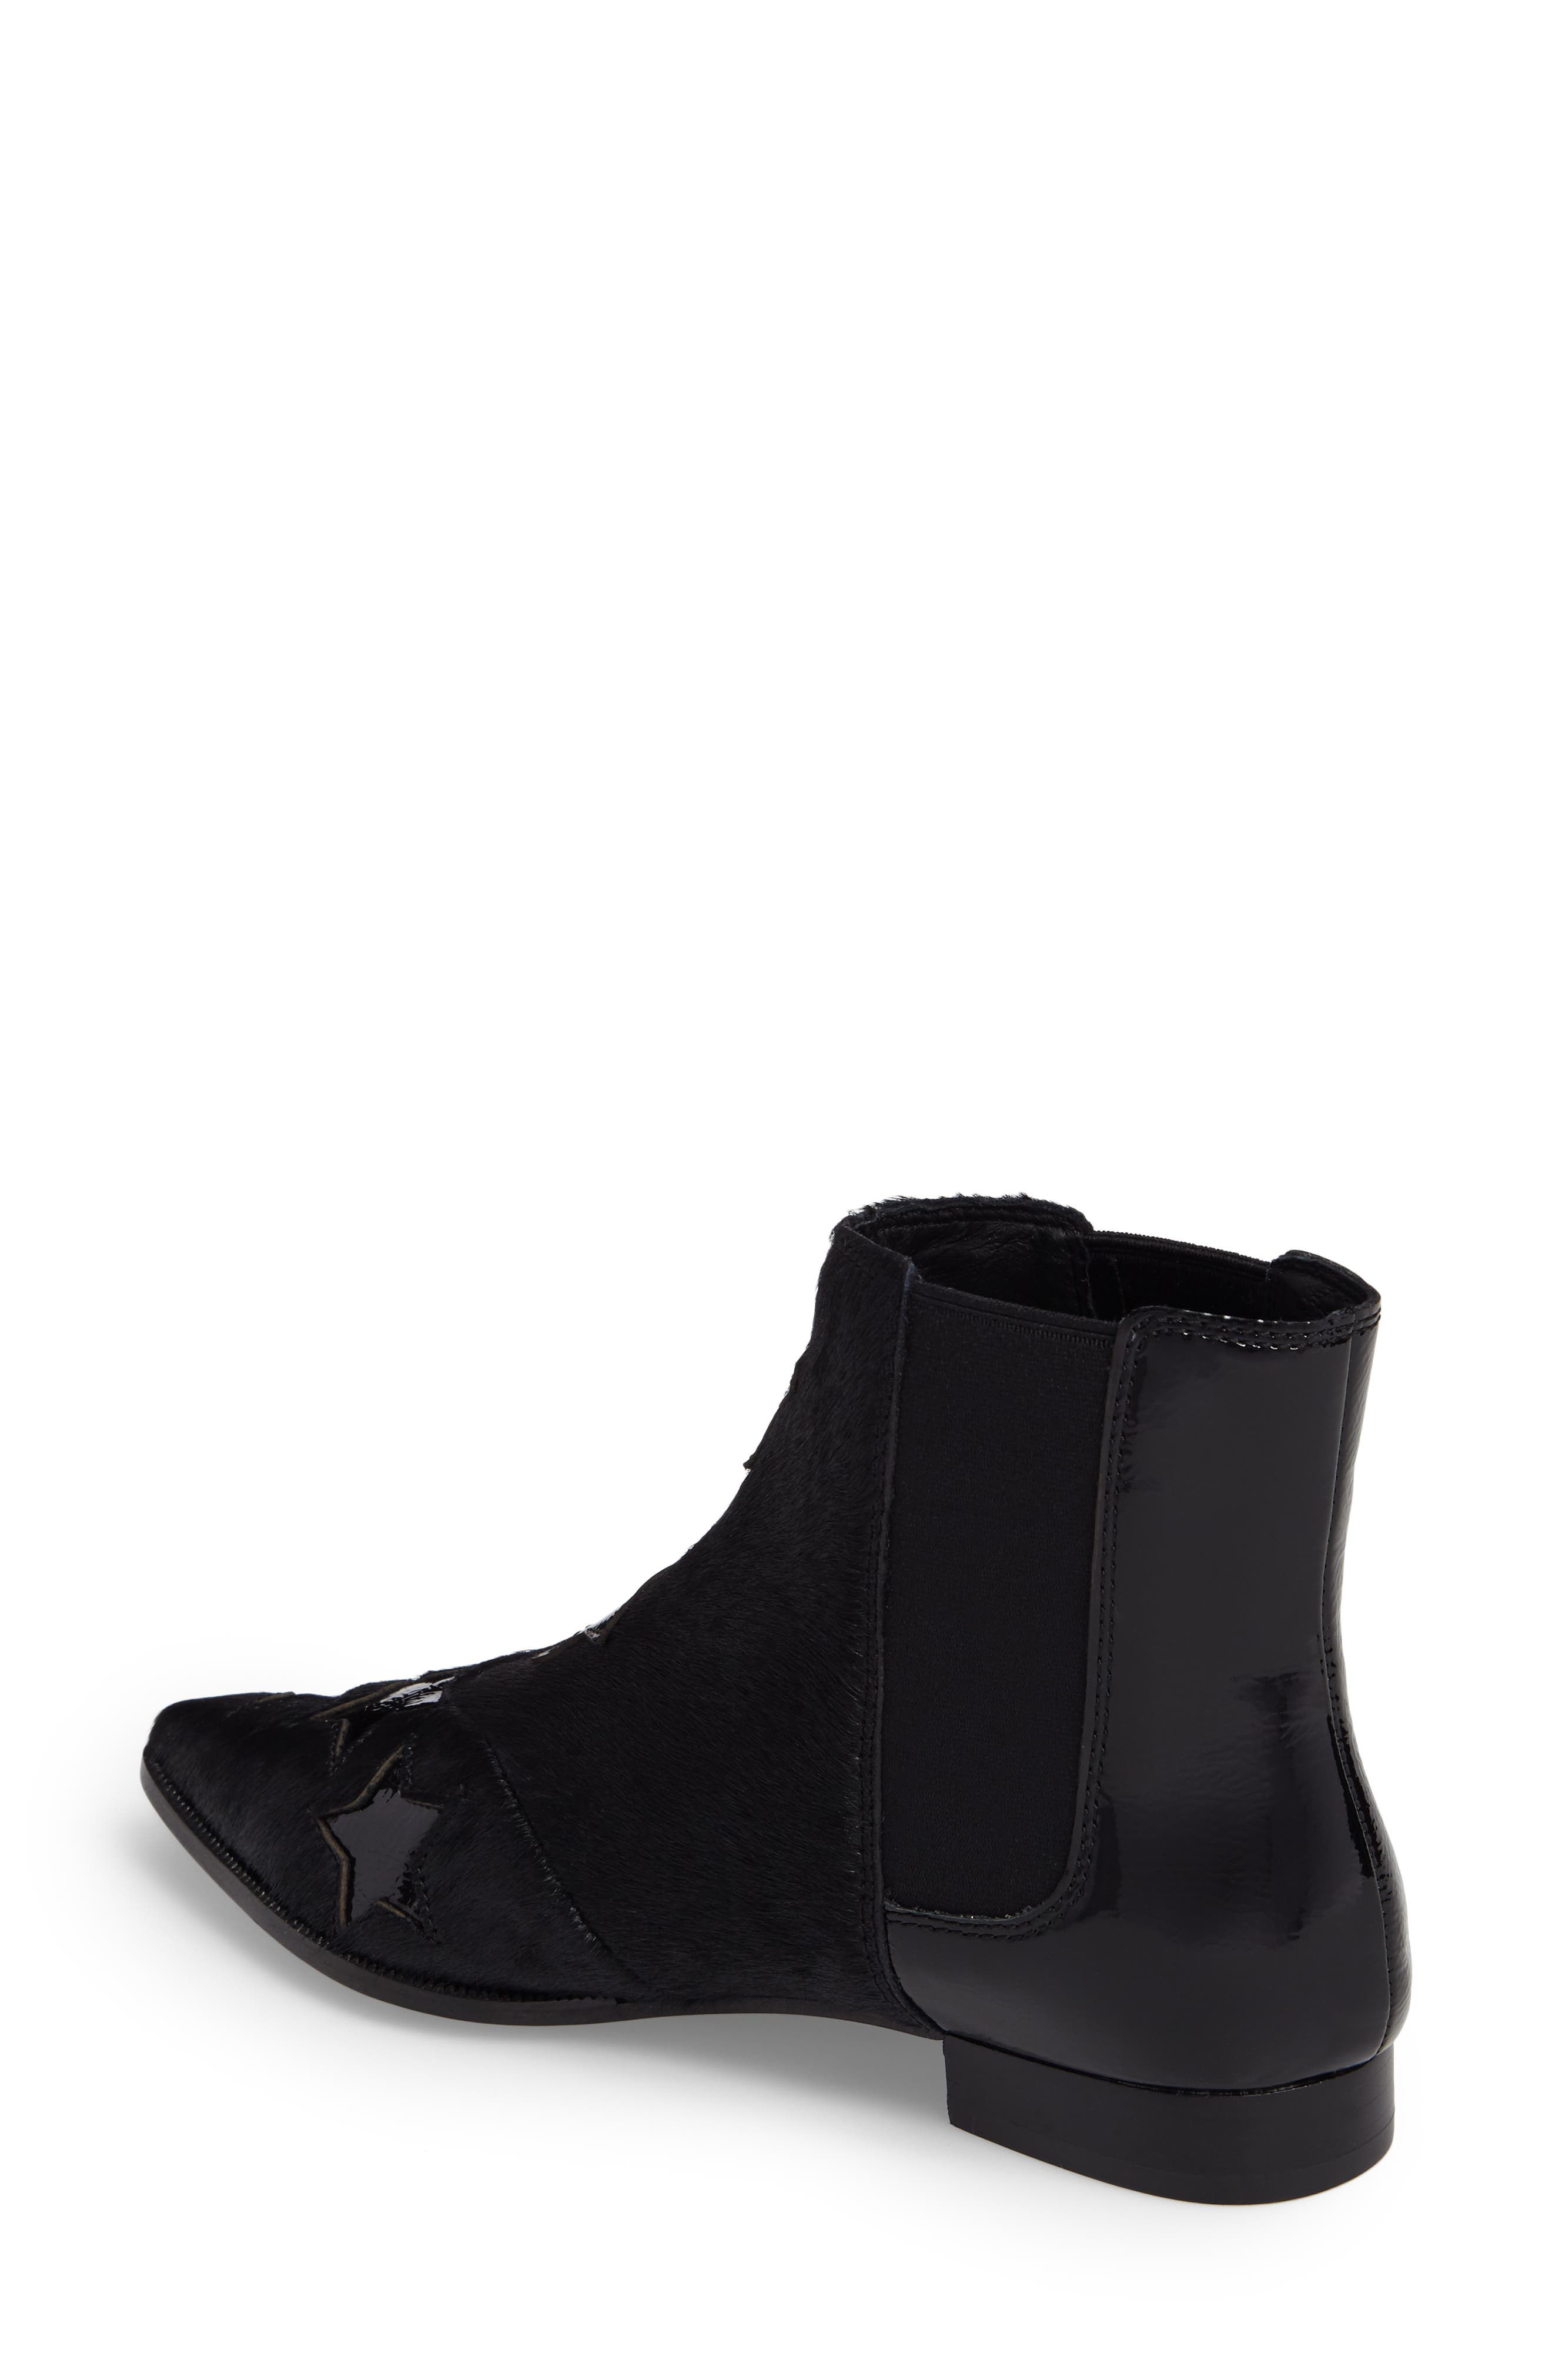 Bliss Genuine Calf Hair Chelsea Bootie,                             Alternate thumbnail 2, color,                             Black Leather